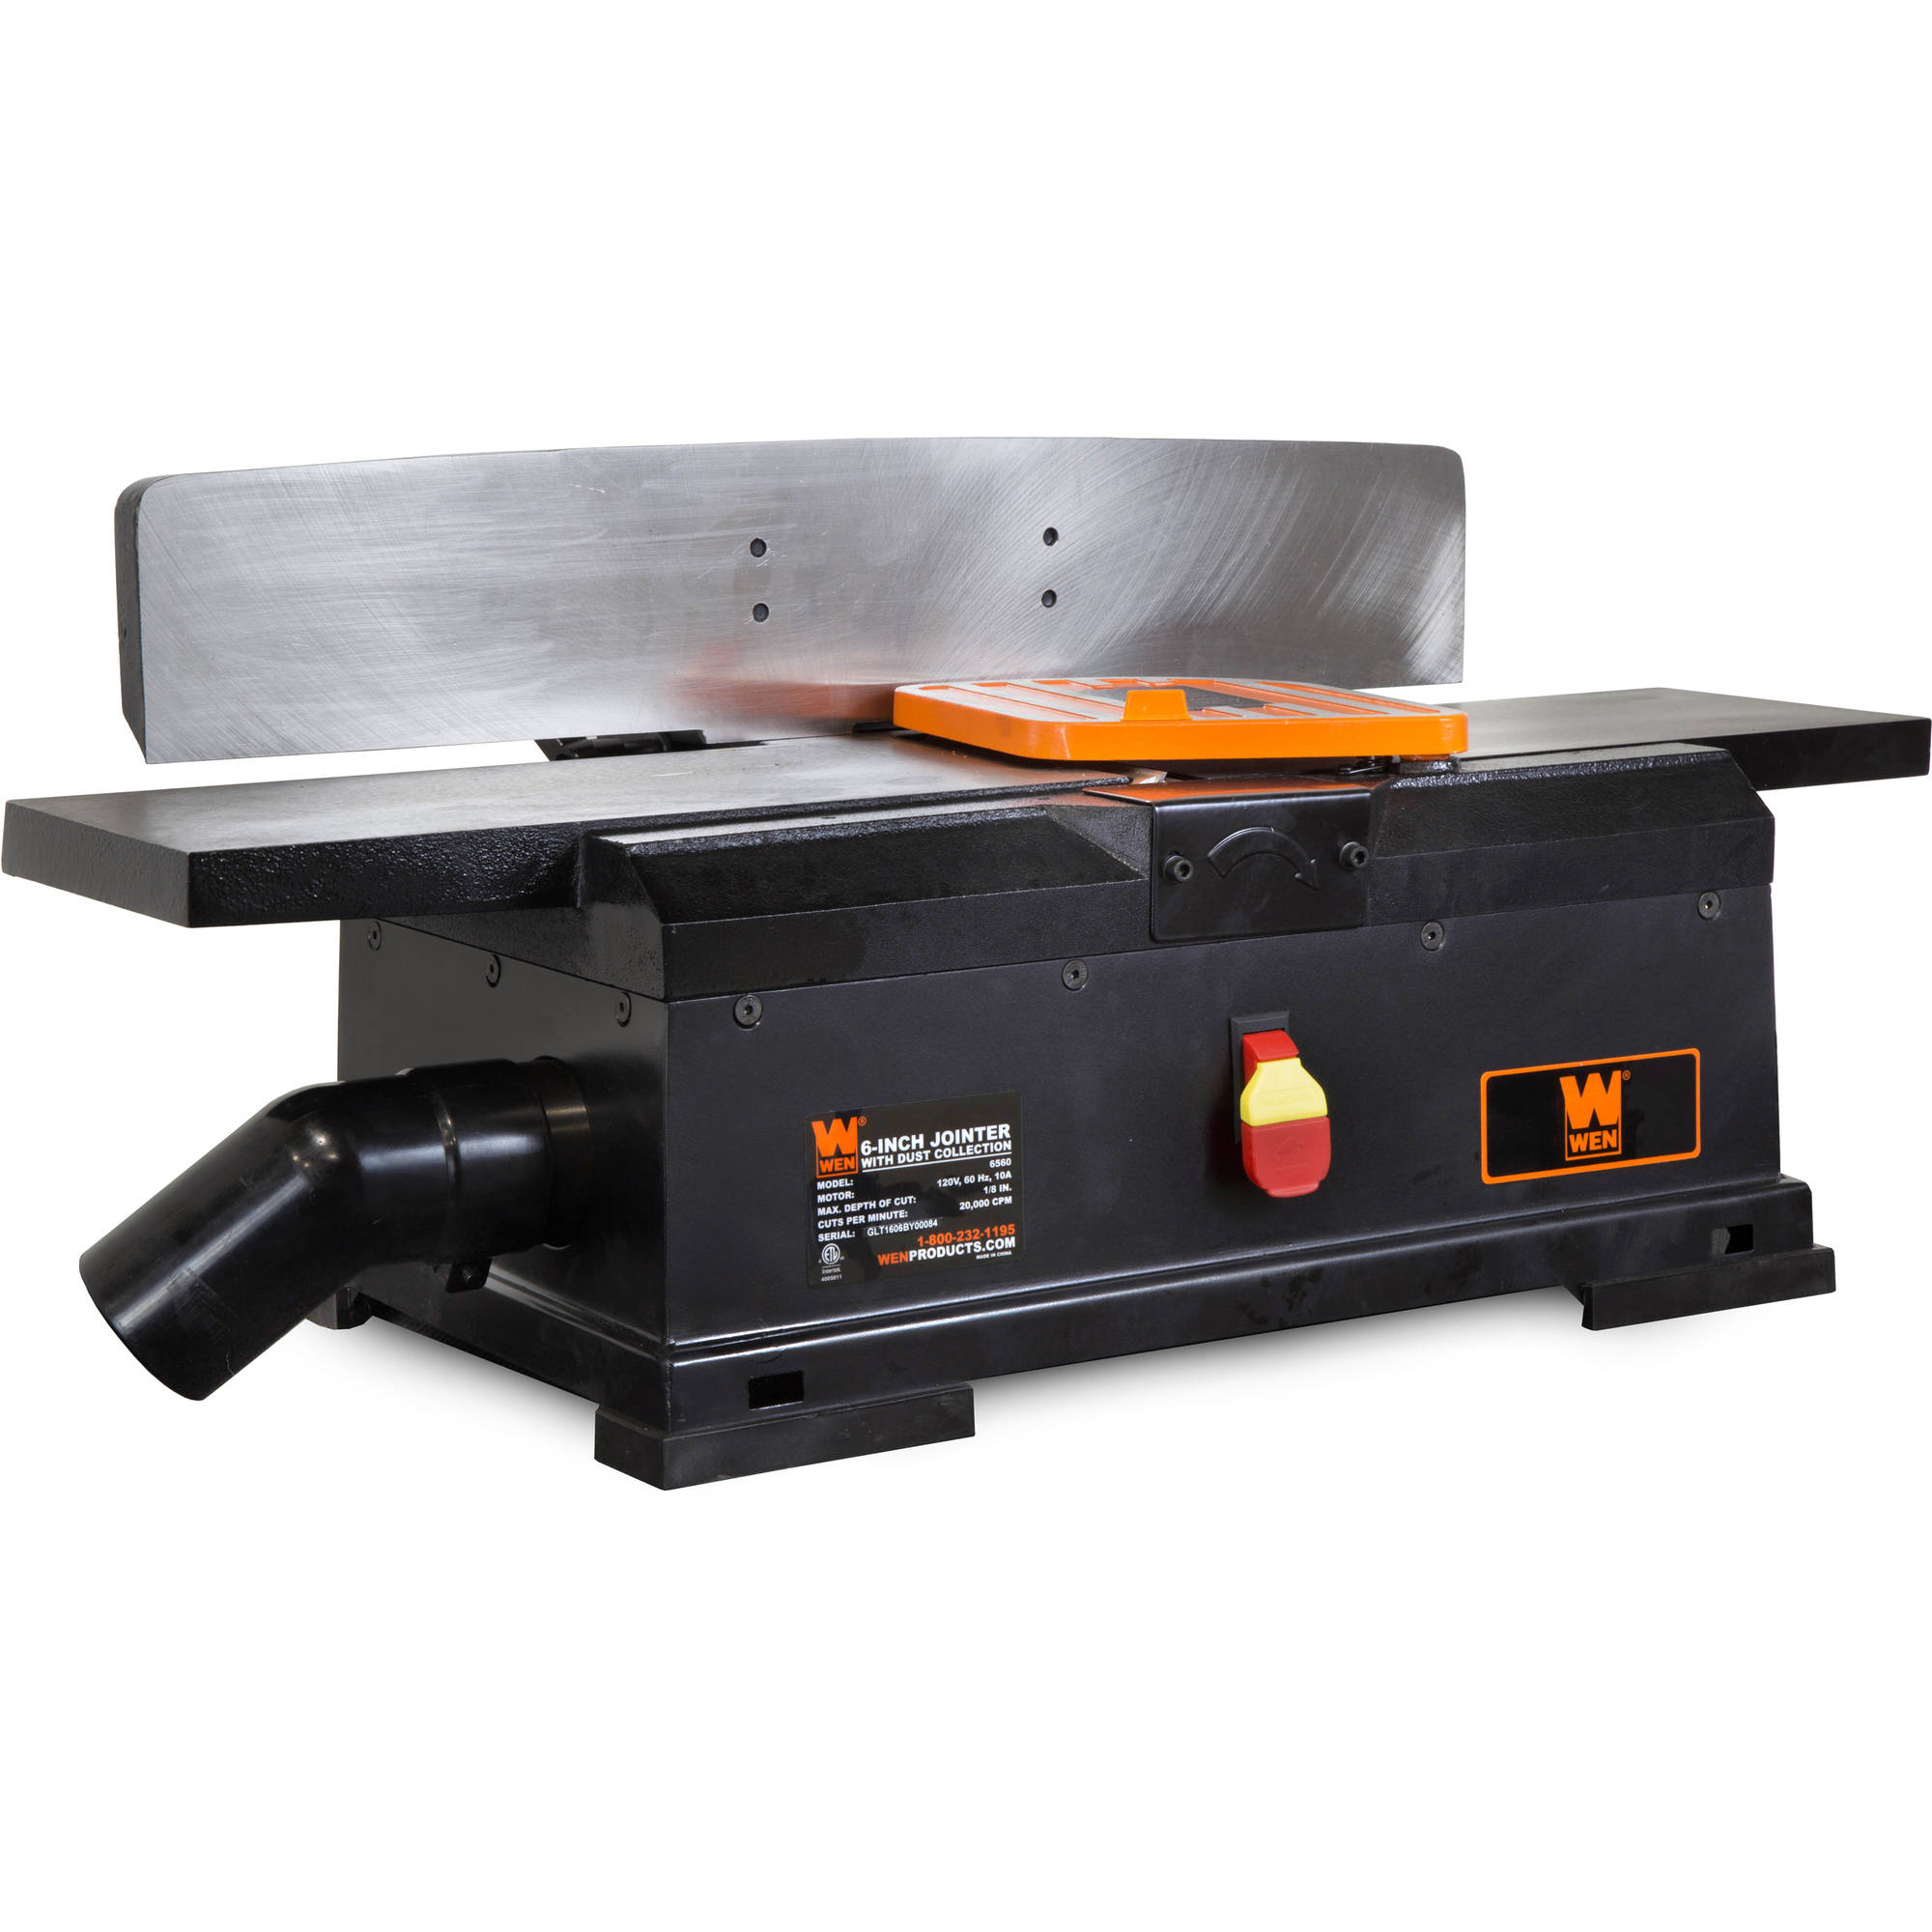 "WEN 6"" Benchtop Jointer by WEN"